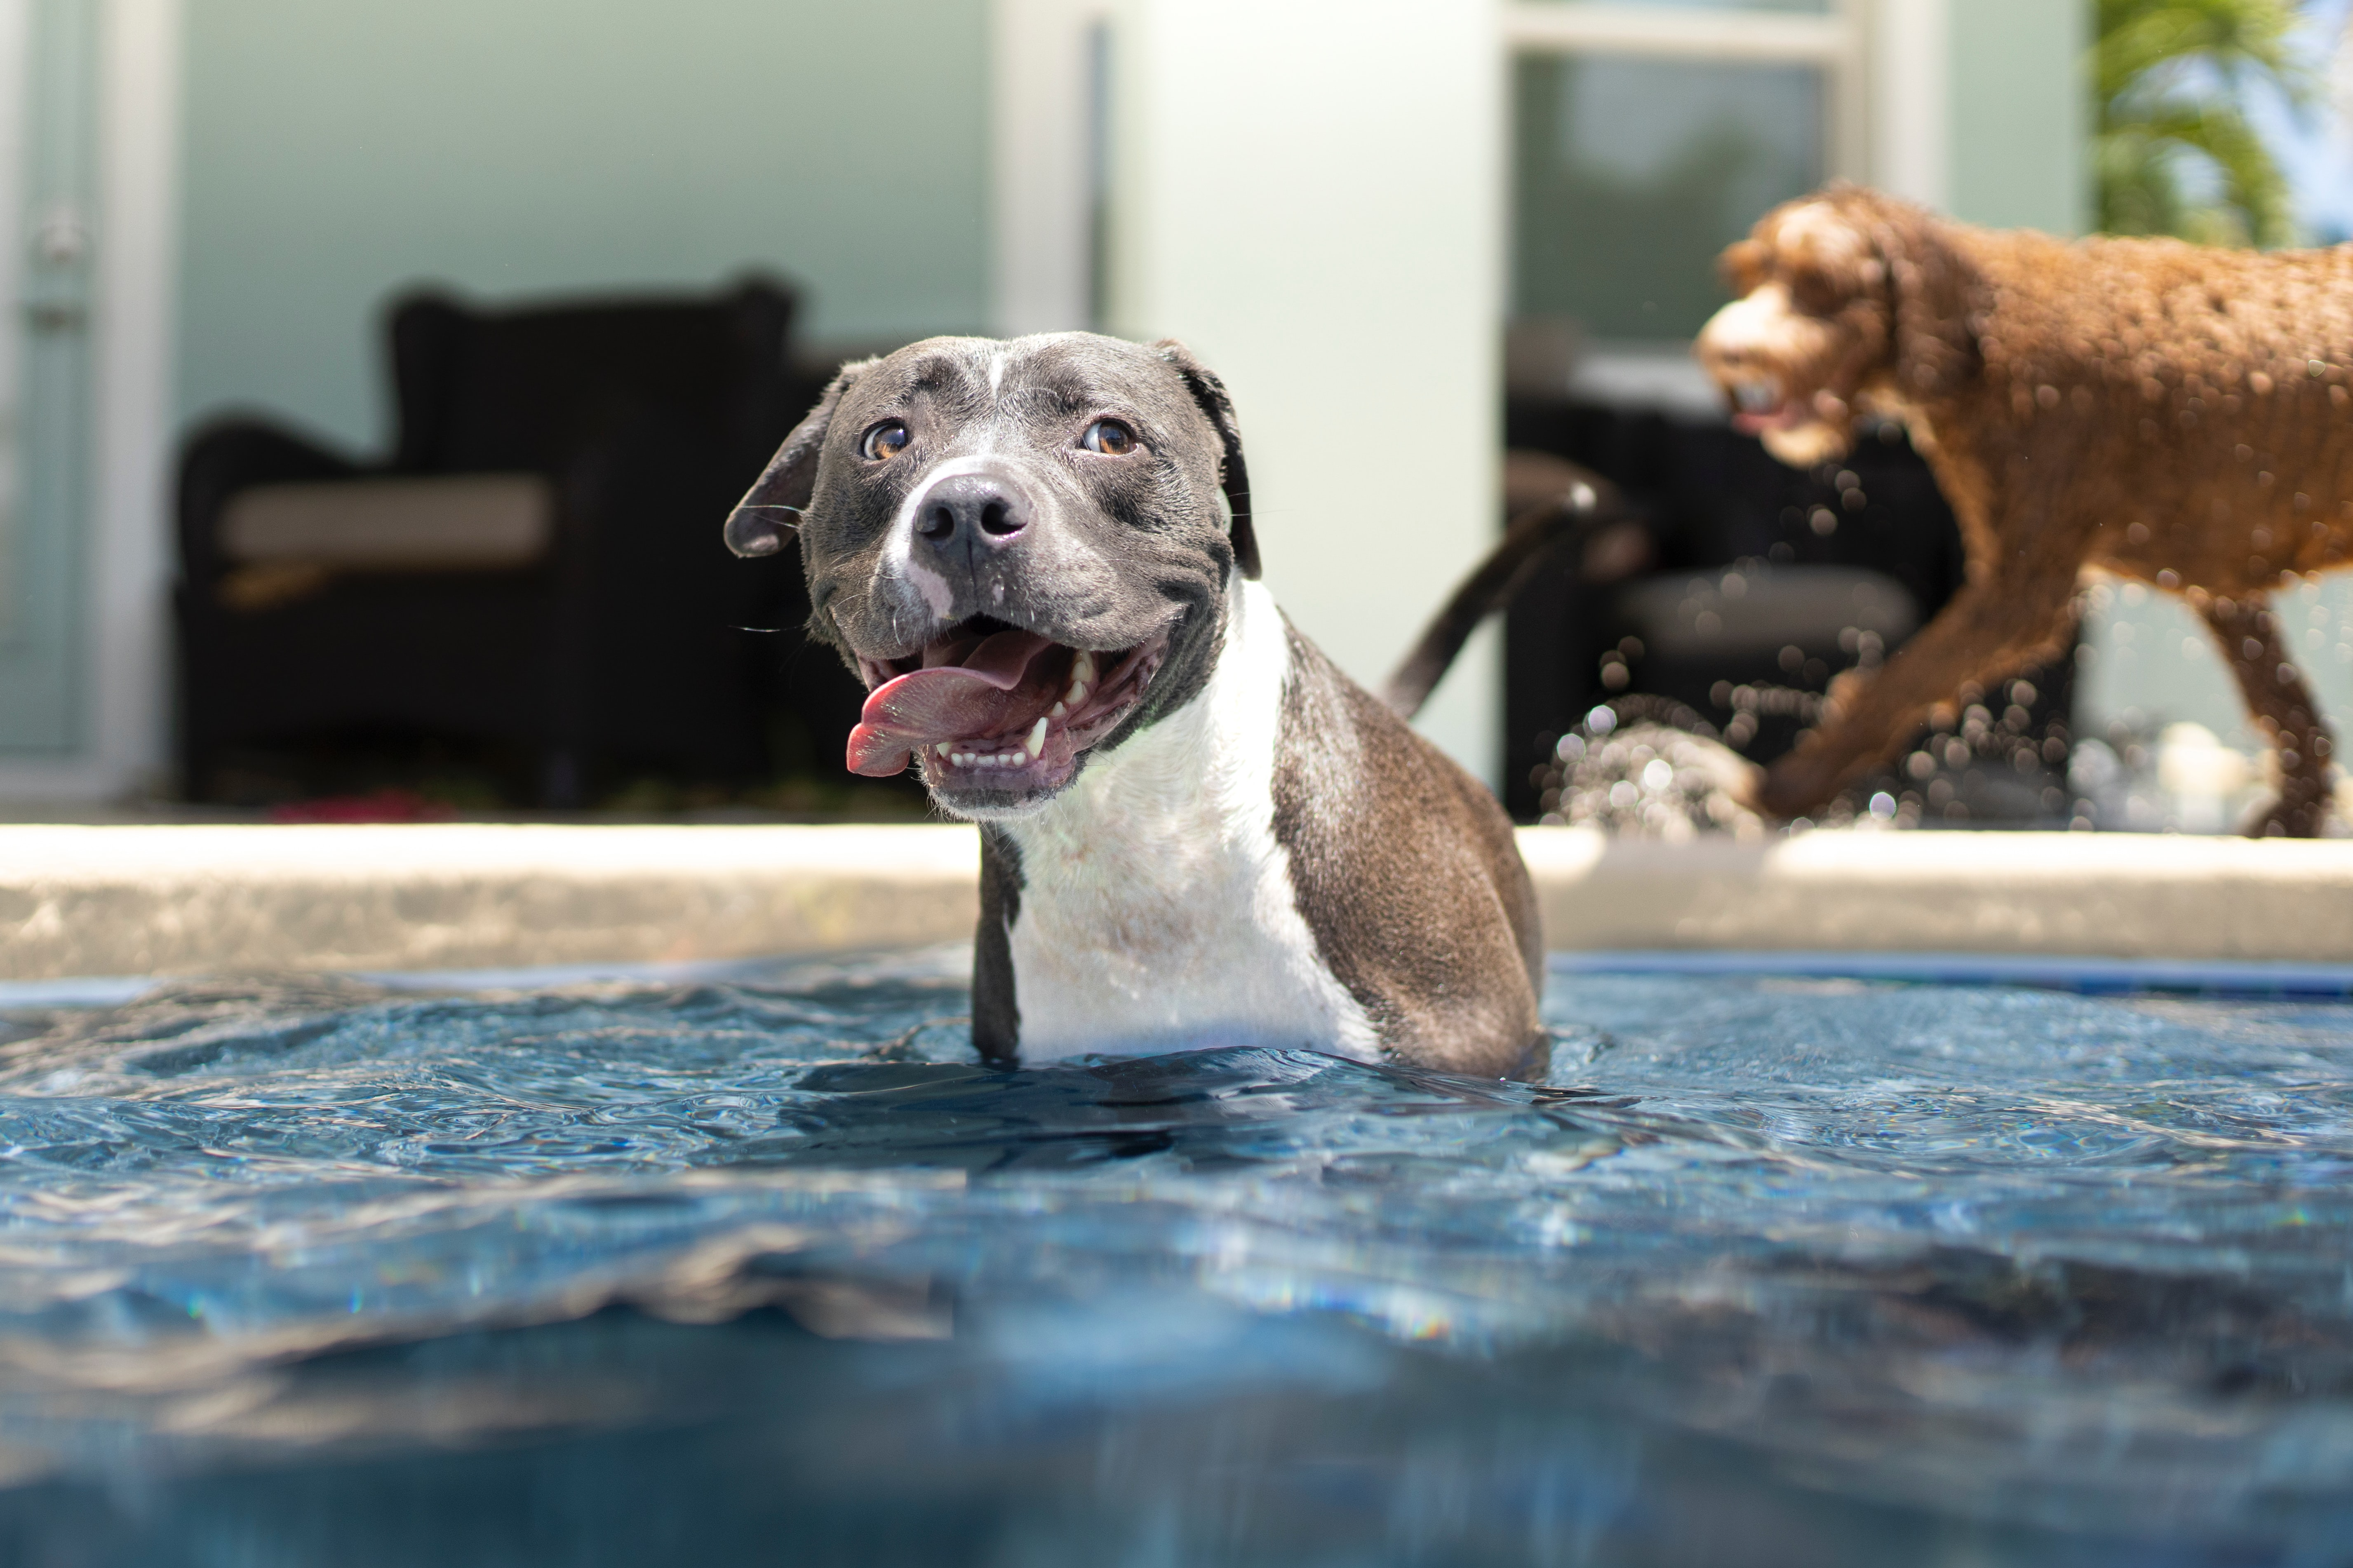 Grey and white dog sitting in pool with his tongue out and being very cute